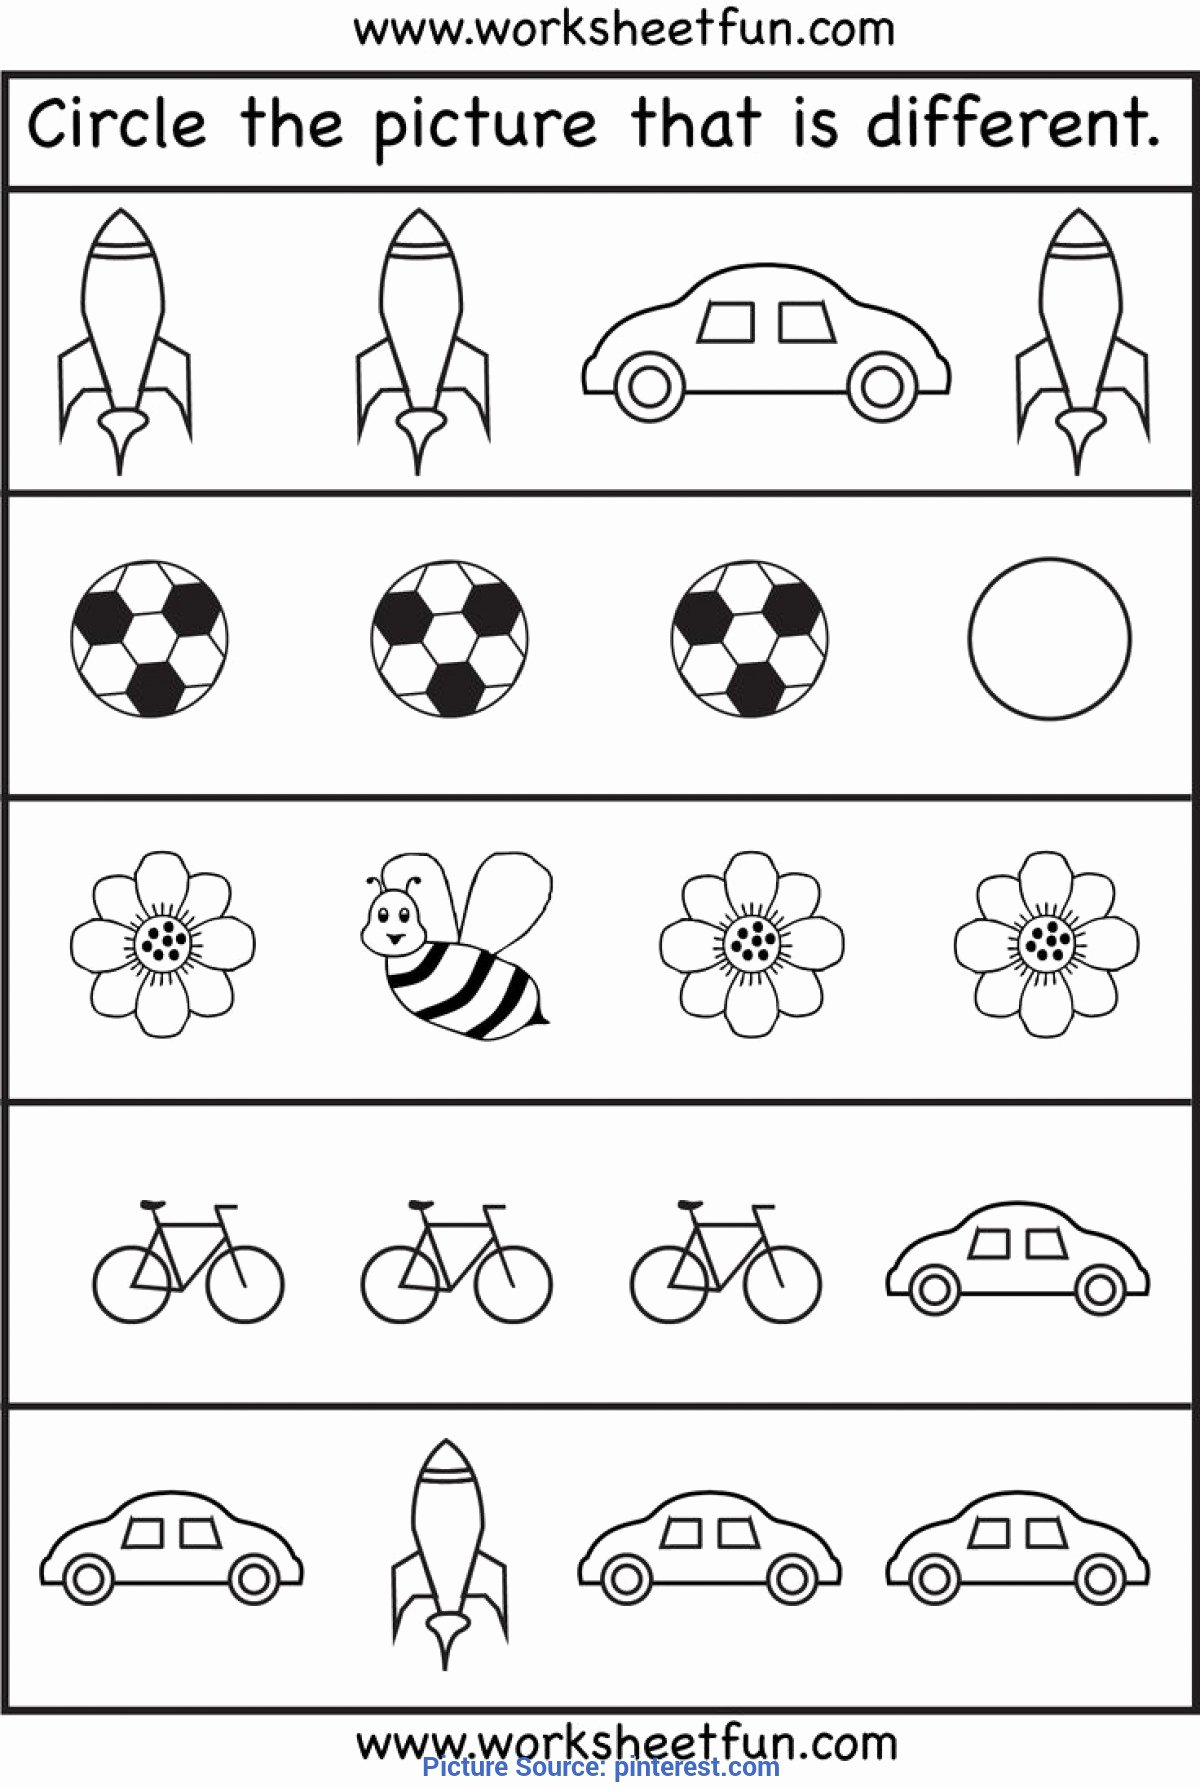 Few and Many Worksheets for Preschoolers Fresh Kindergarten Few Lines Doctor as Munity Helper Kg1